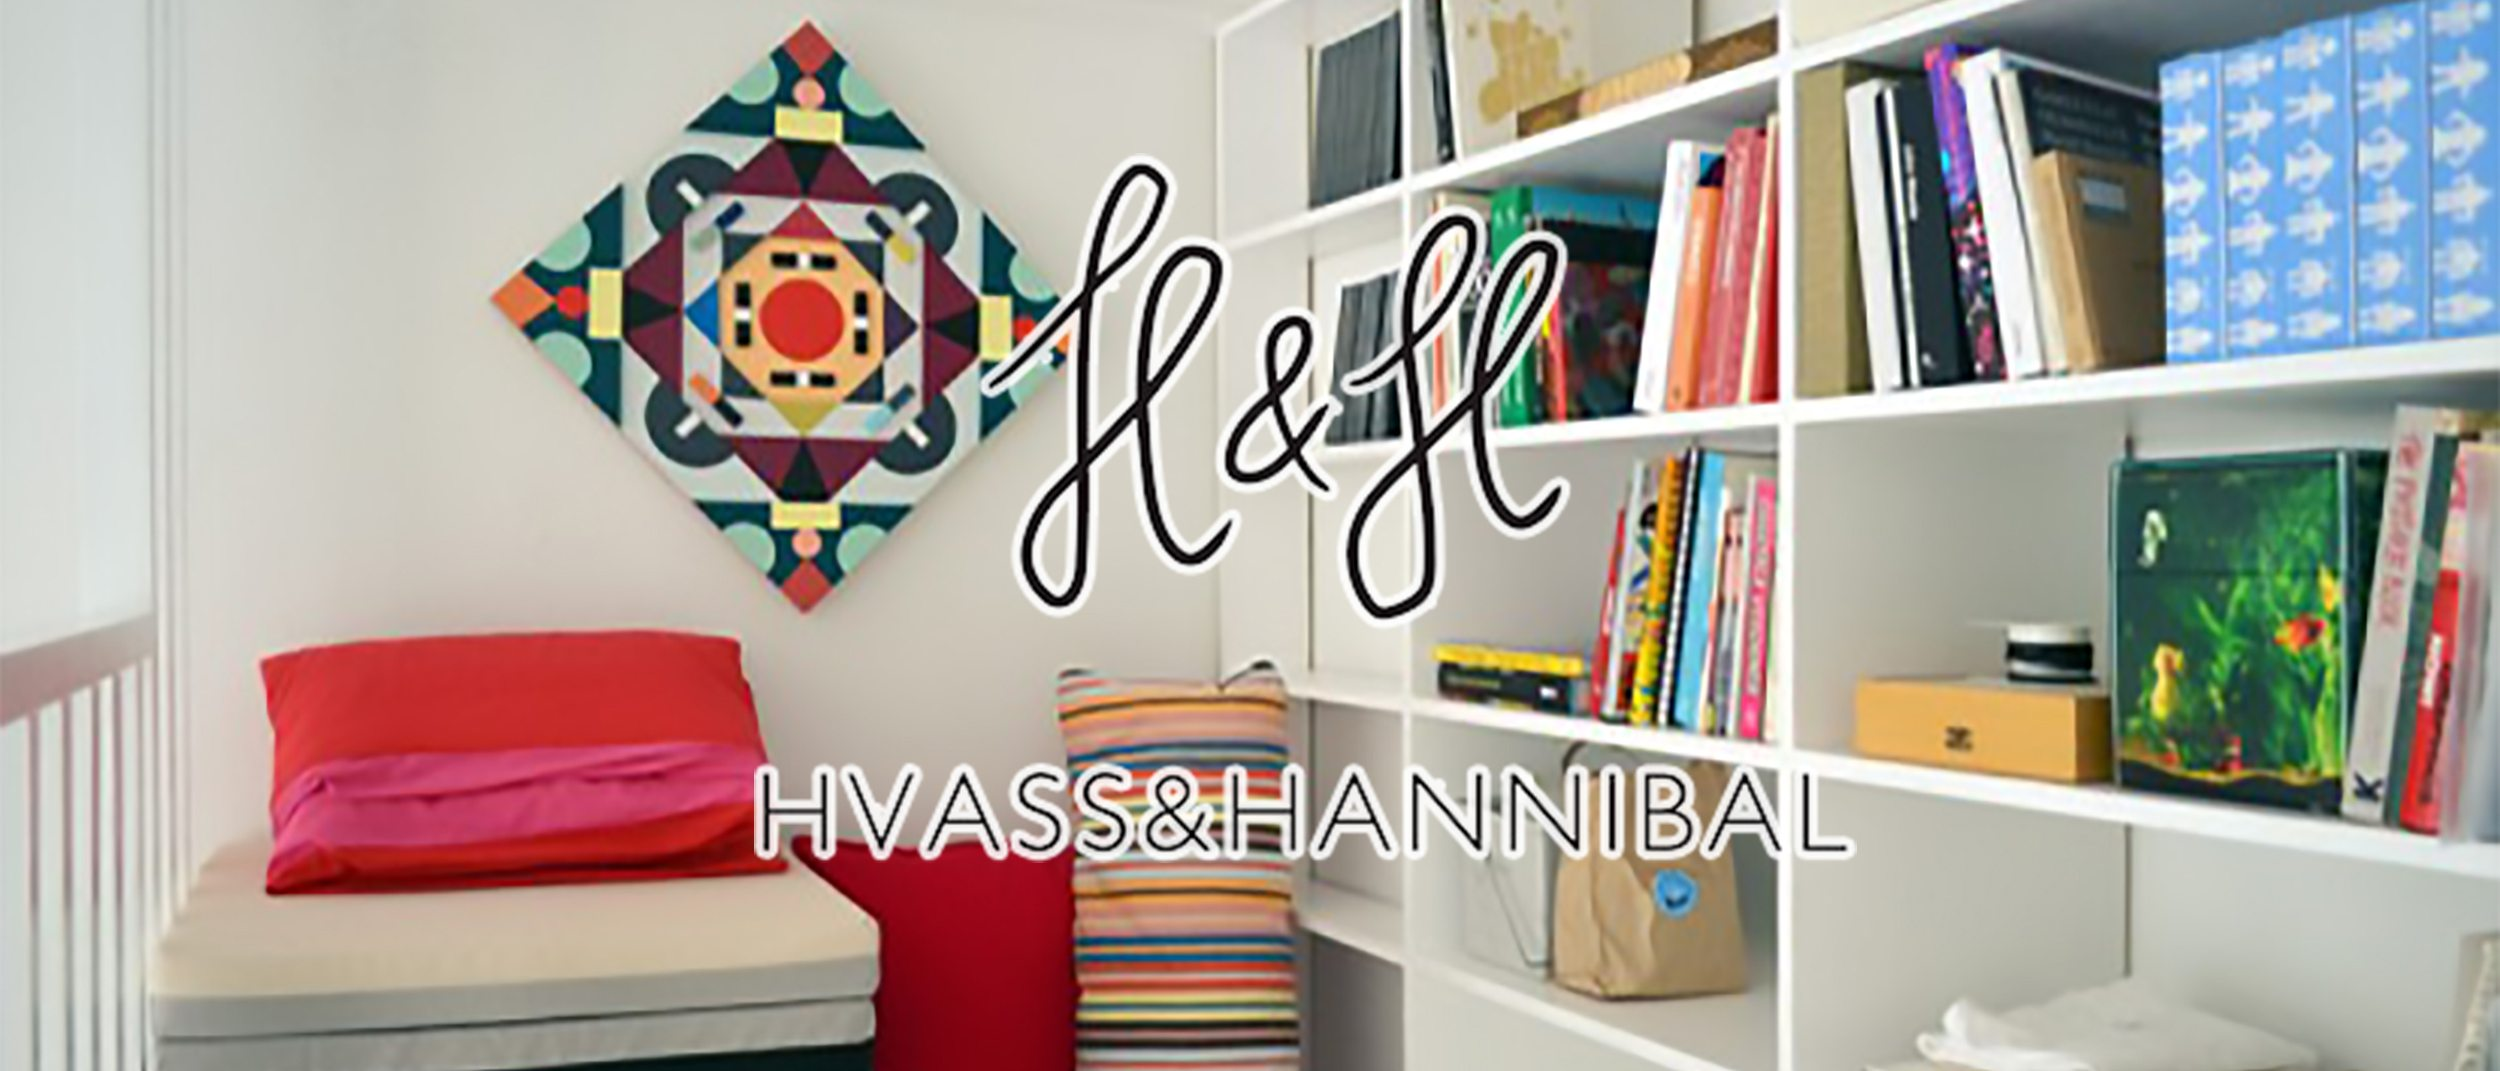 Hvass & Hannibal Studio